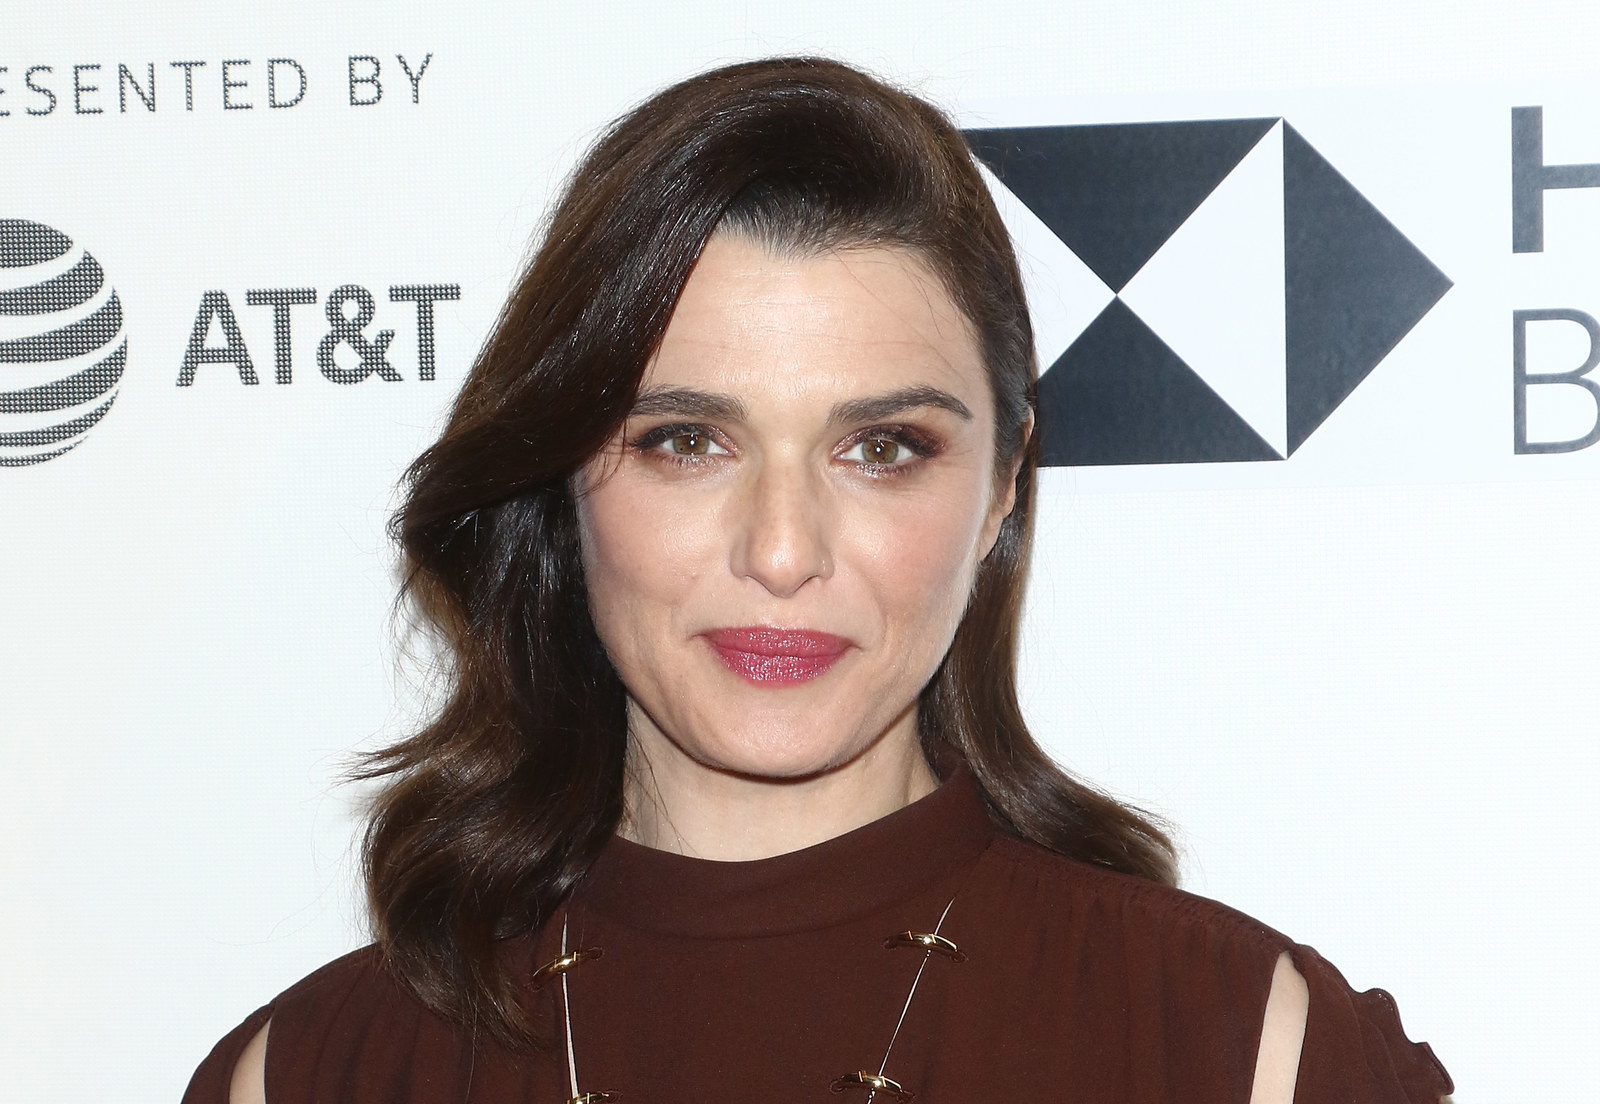 Rachel Weisz is celebrating her 49th birthday on March 7.